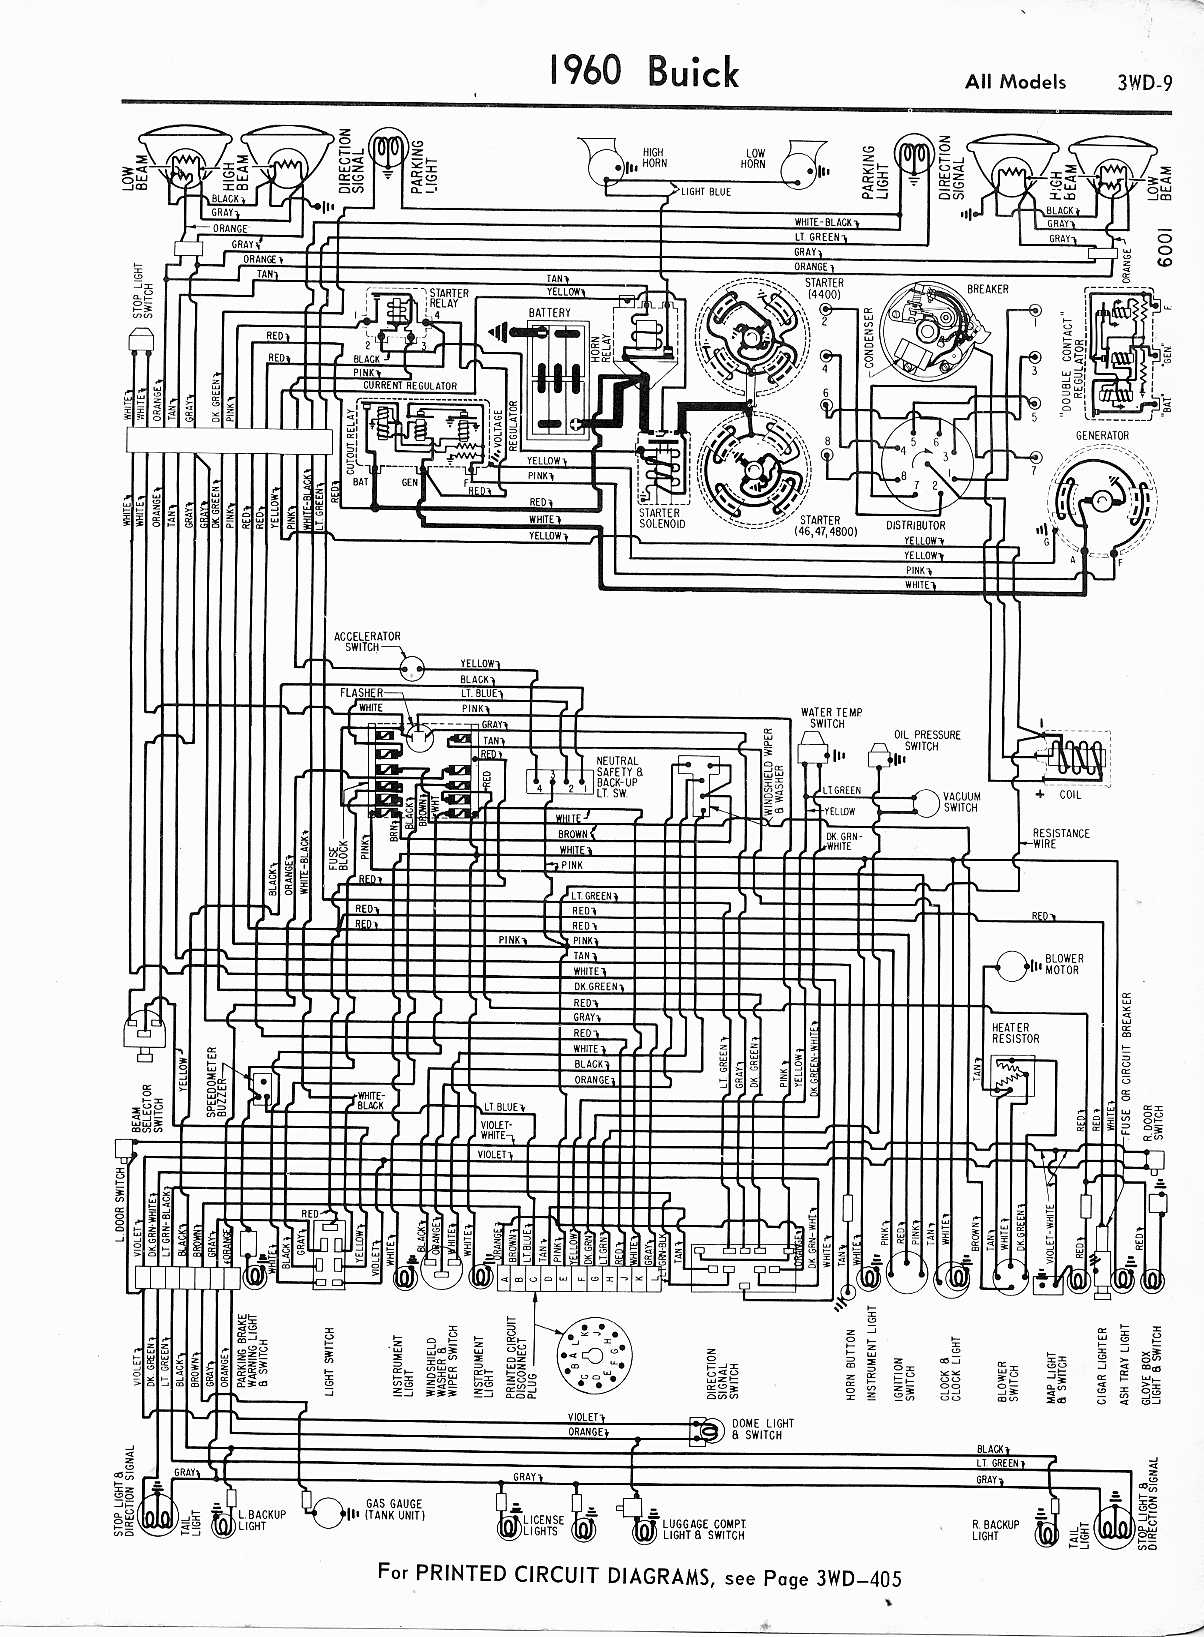 1960 buick lesabre wiring diagram wiring library Buick Parts Diagrams wiring diagram for 1963 buick special